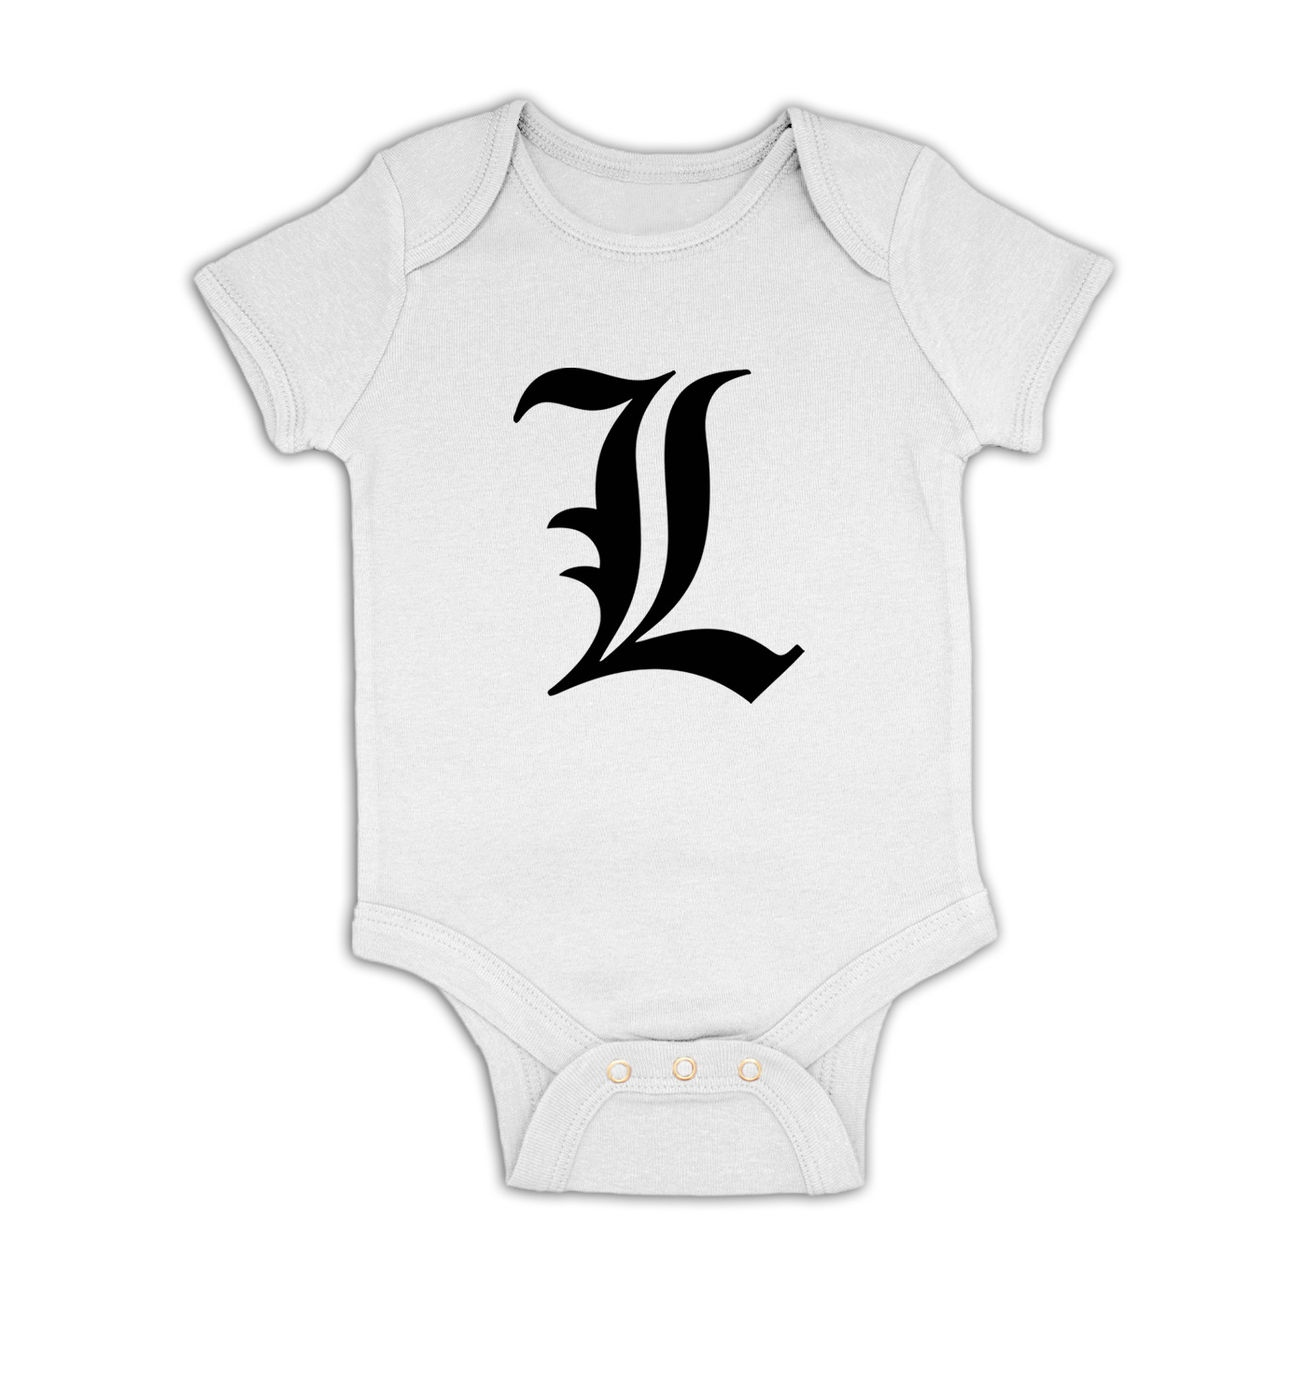 L Anime baby grow by Something Geeky